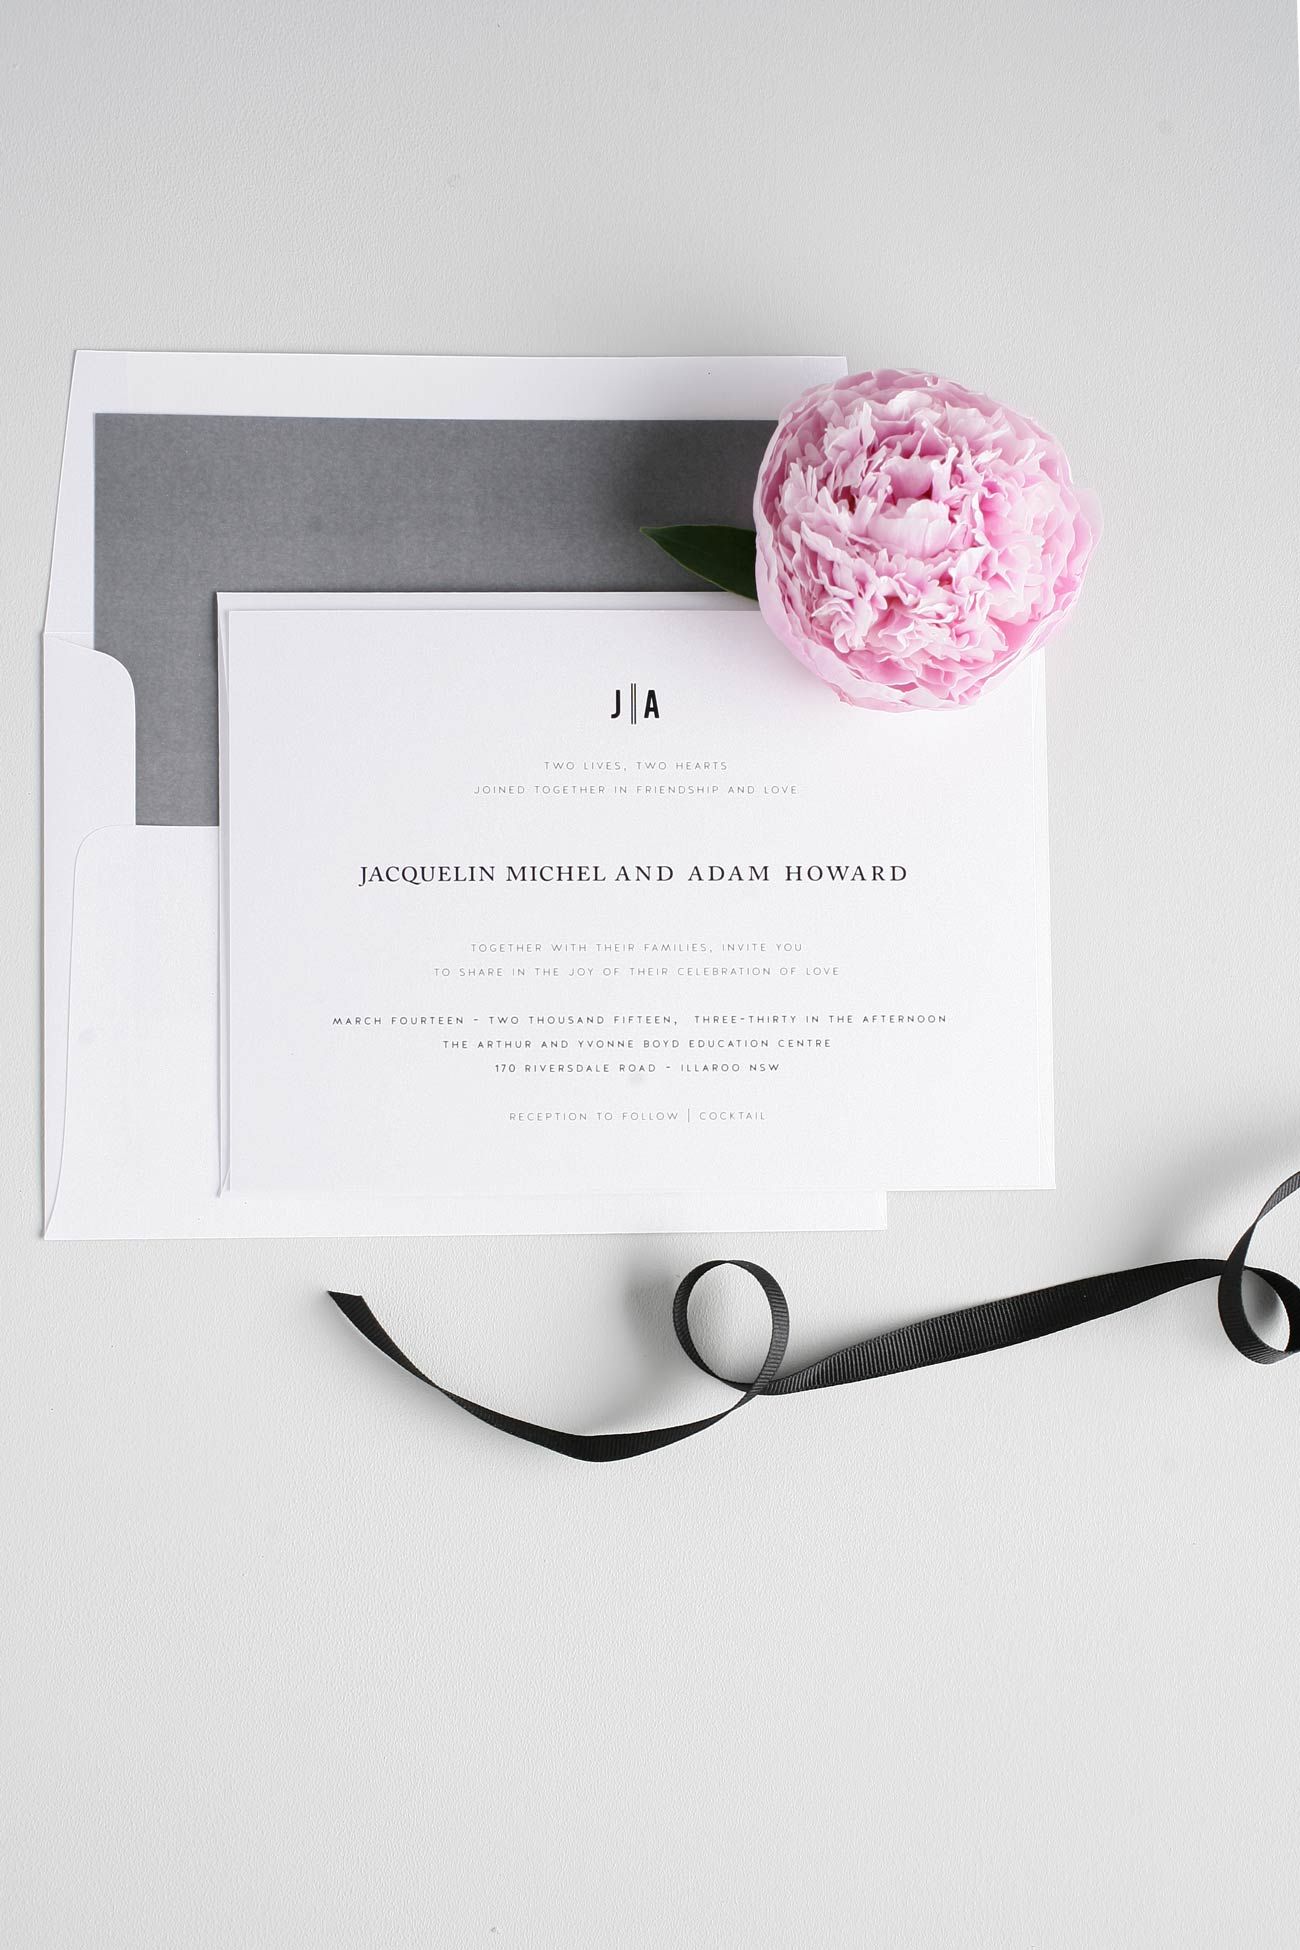 Urban wedding invitations in gray